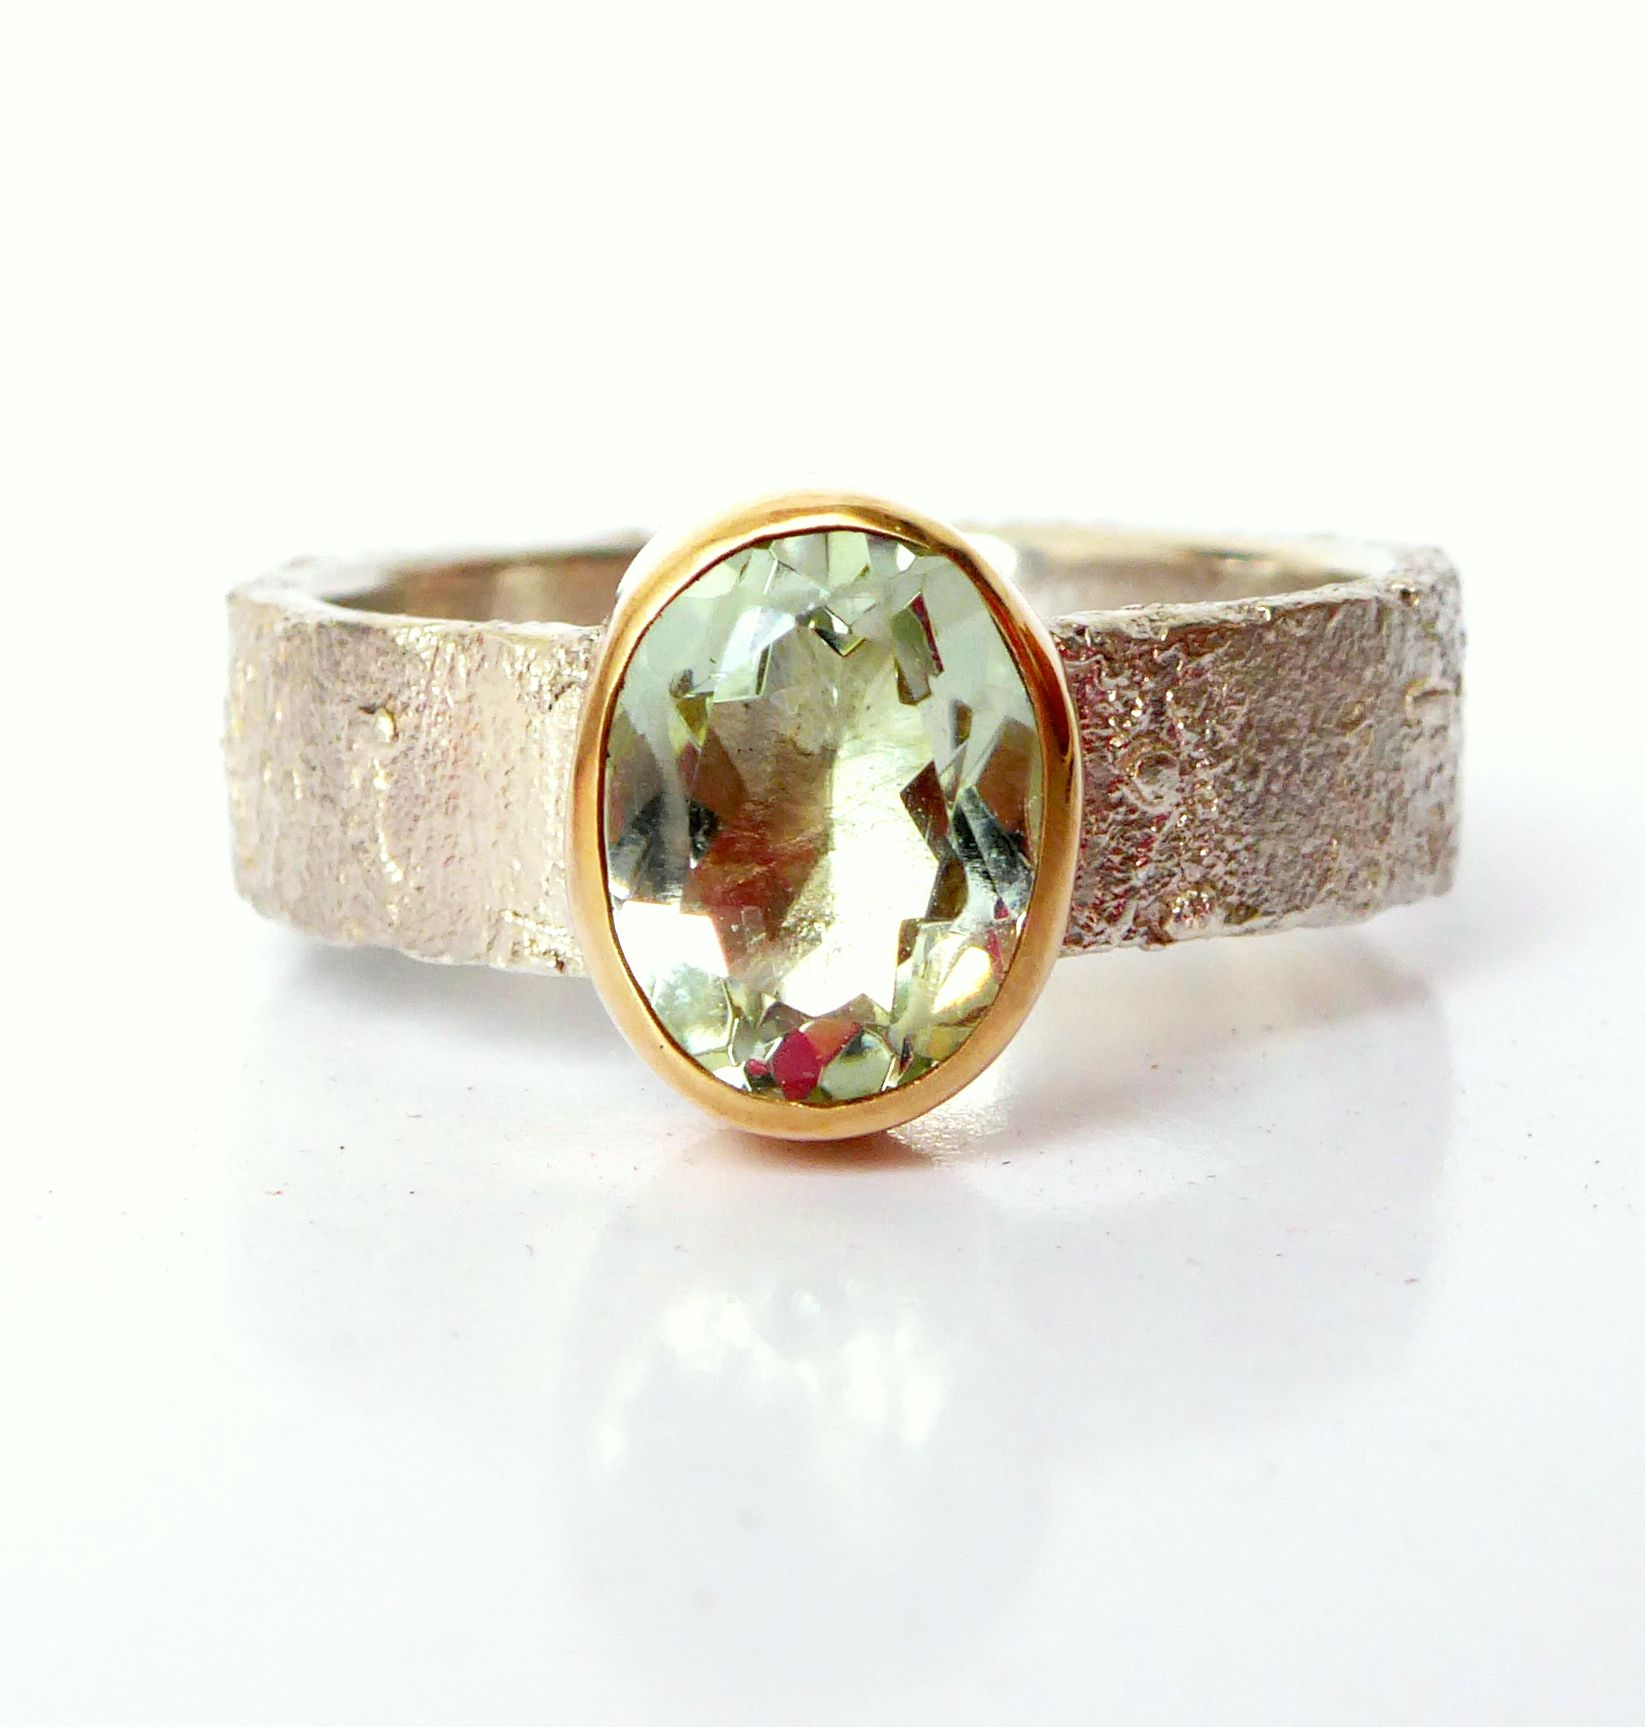 Unusual handmade unique textured silver and gold  gemstone ring